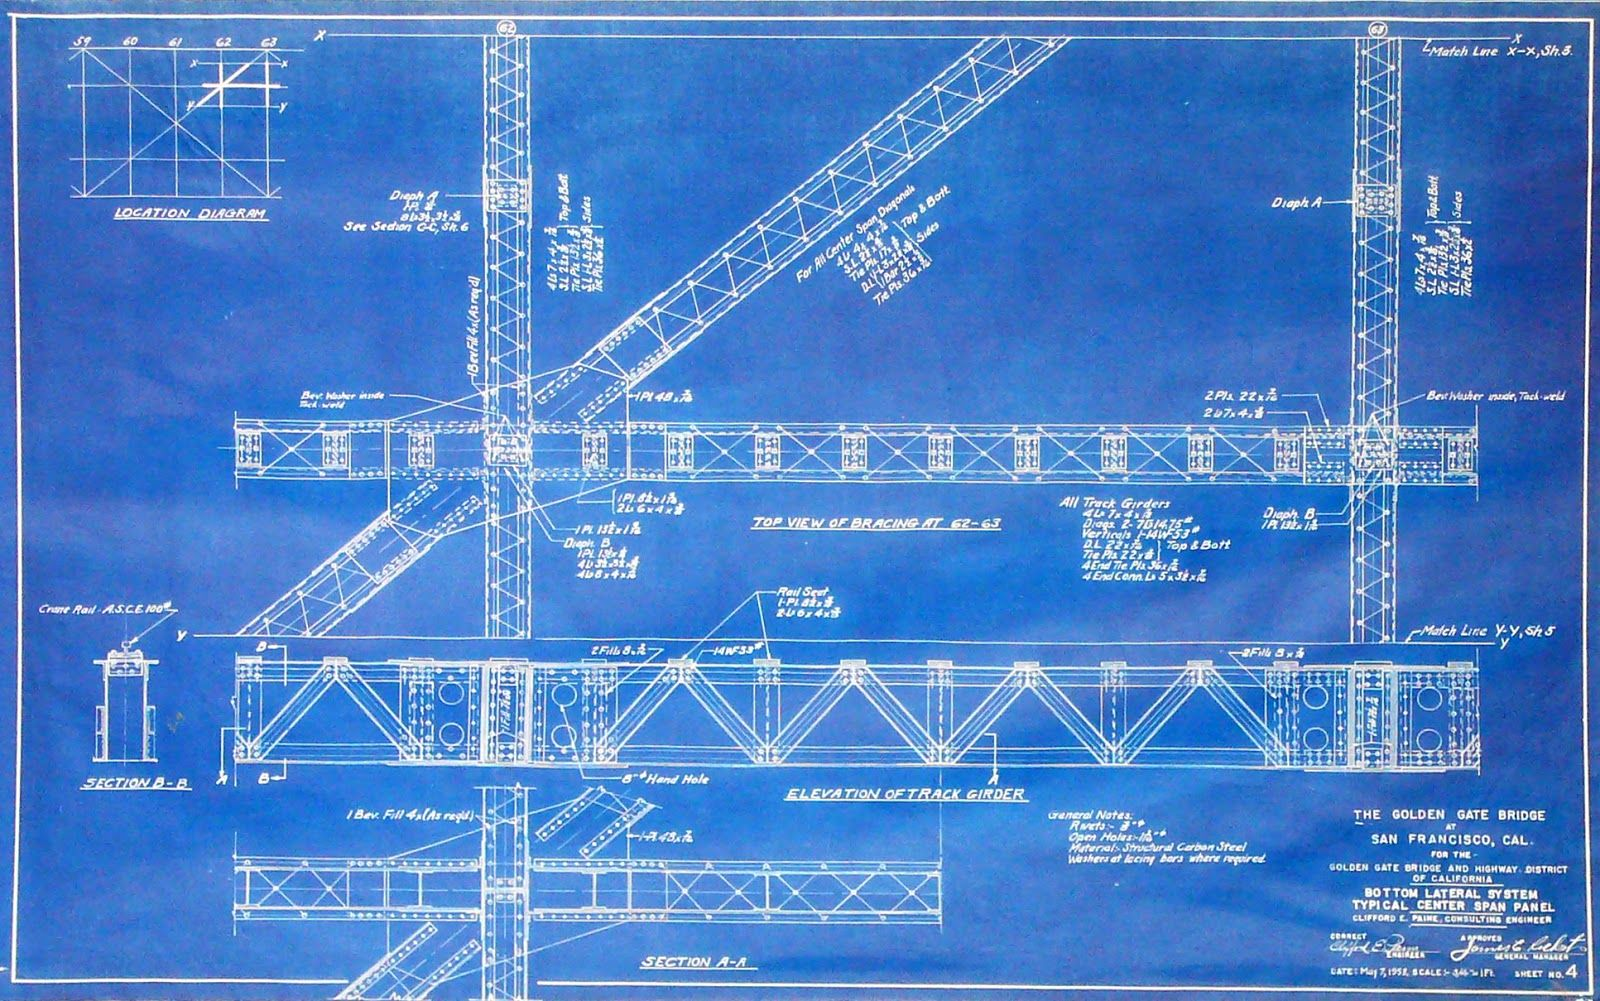 blueprint three.jpg (JPEG Image, 1600 × 1001 pixels) - Scaled (88%)